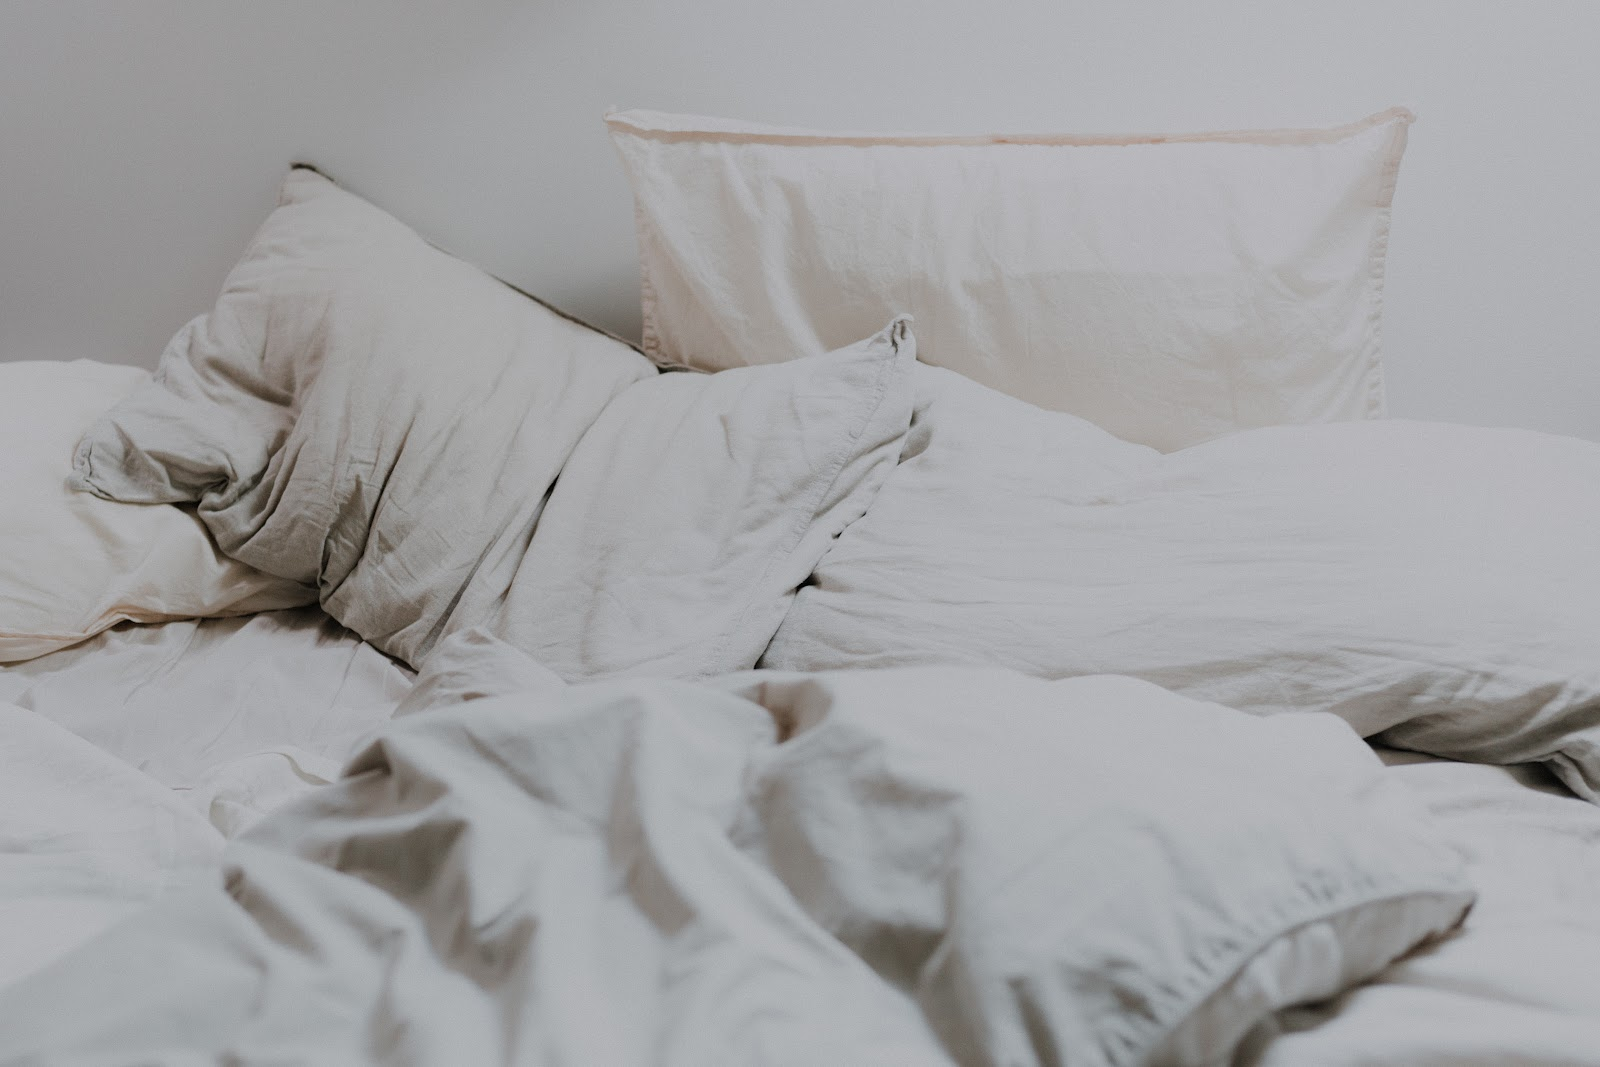 Can a weighted blanket help with insomnia?